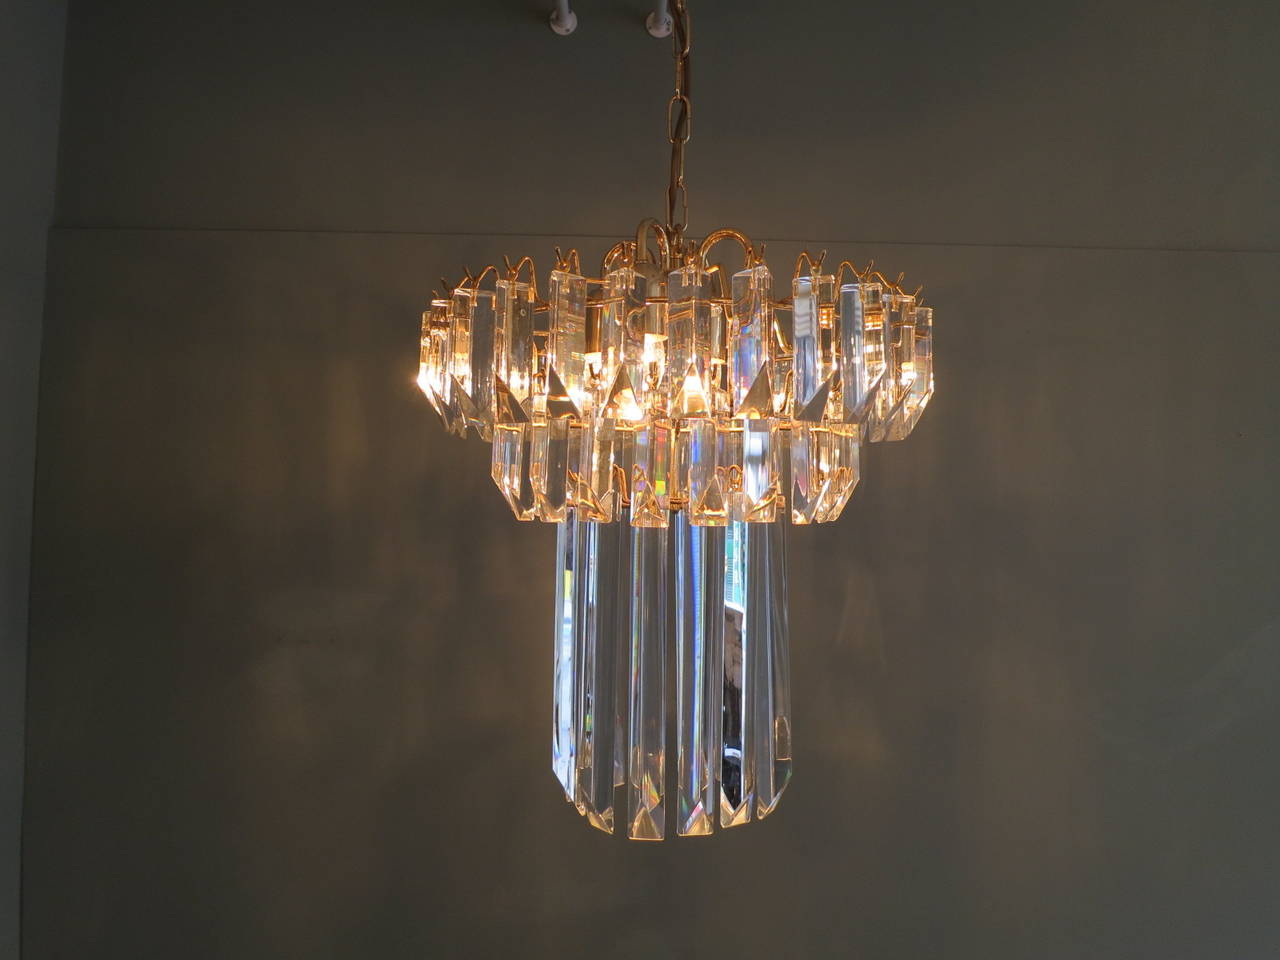 An unusual shaped chandelier in Murano crystal, with 3 tiers 2 short and 1 long. On a gold lacquered frame with four light fittings.  Drop with chain 97cm